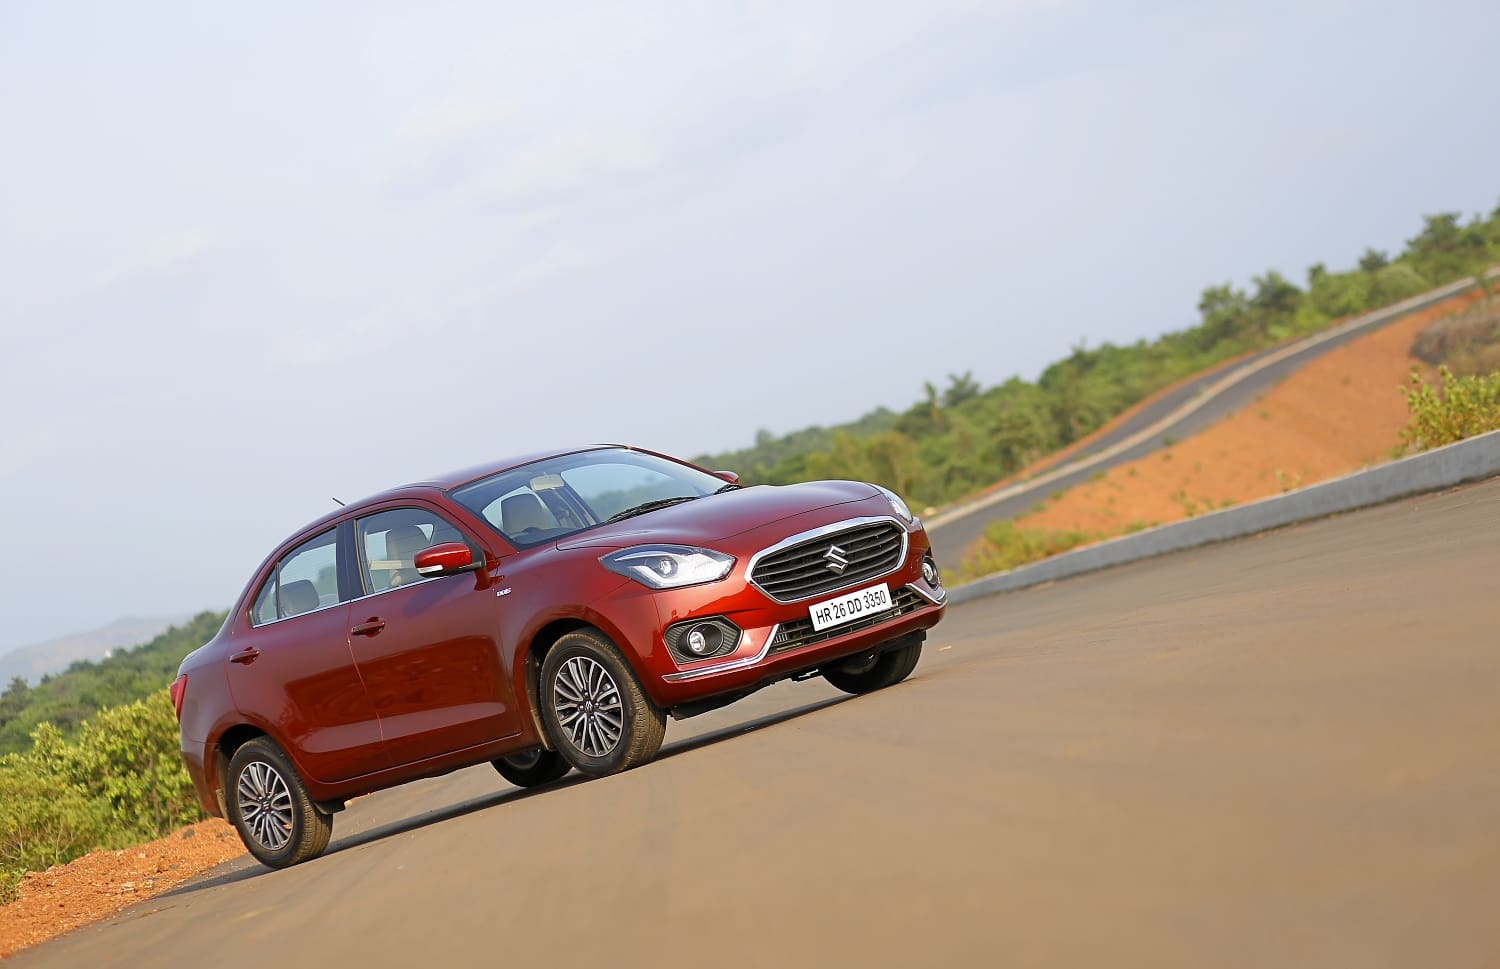 Maruti Dzire Gets BS6 Petrol Engine; Gets A Price Hike